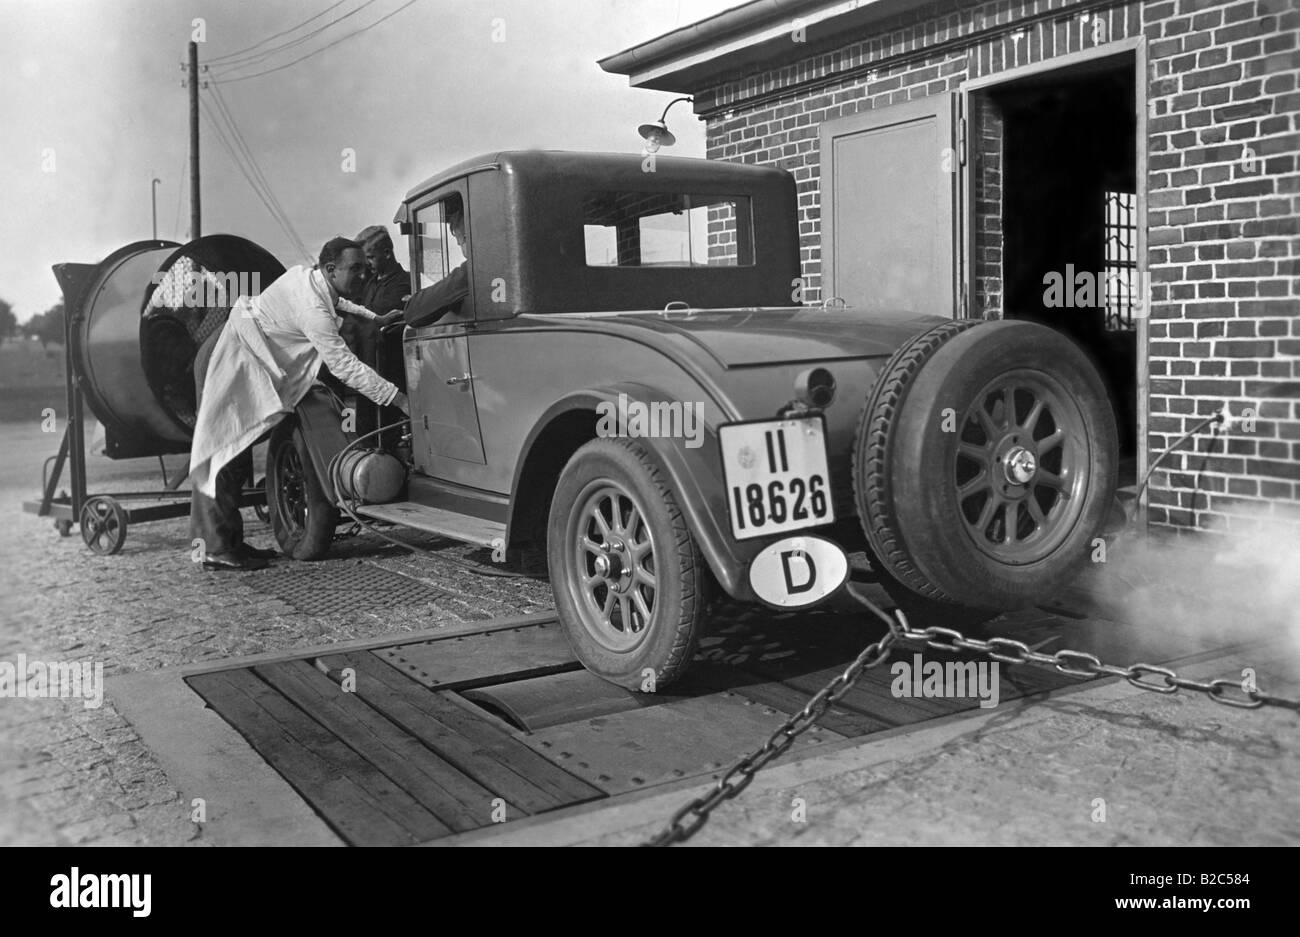 Car being checked, MOT, man looking at the car, historic picture from about 1930 - Stock Image